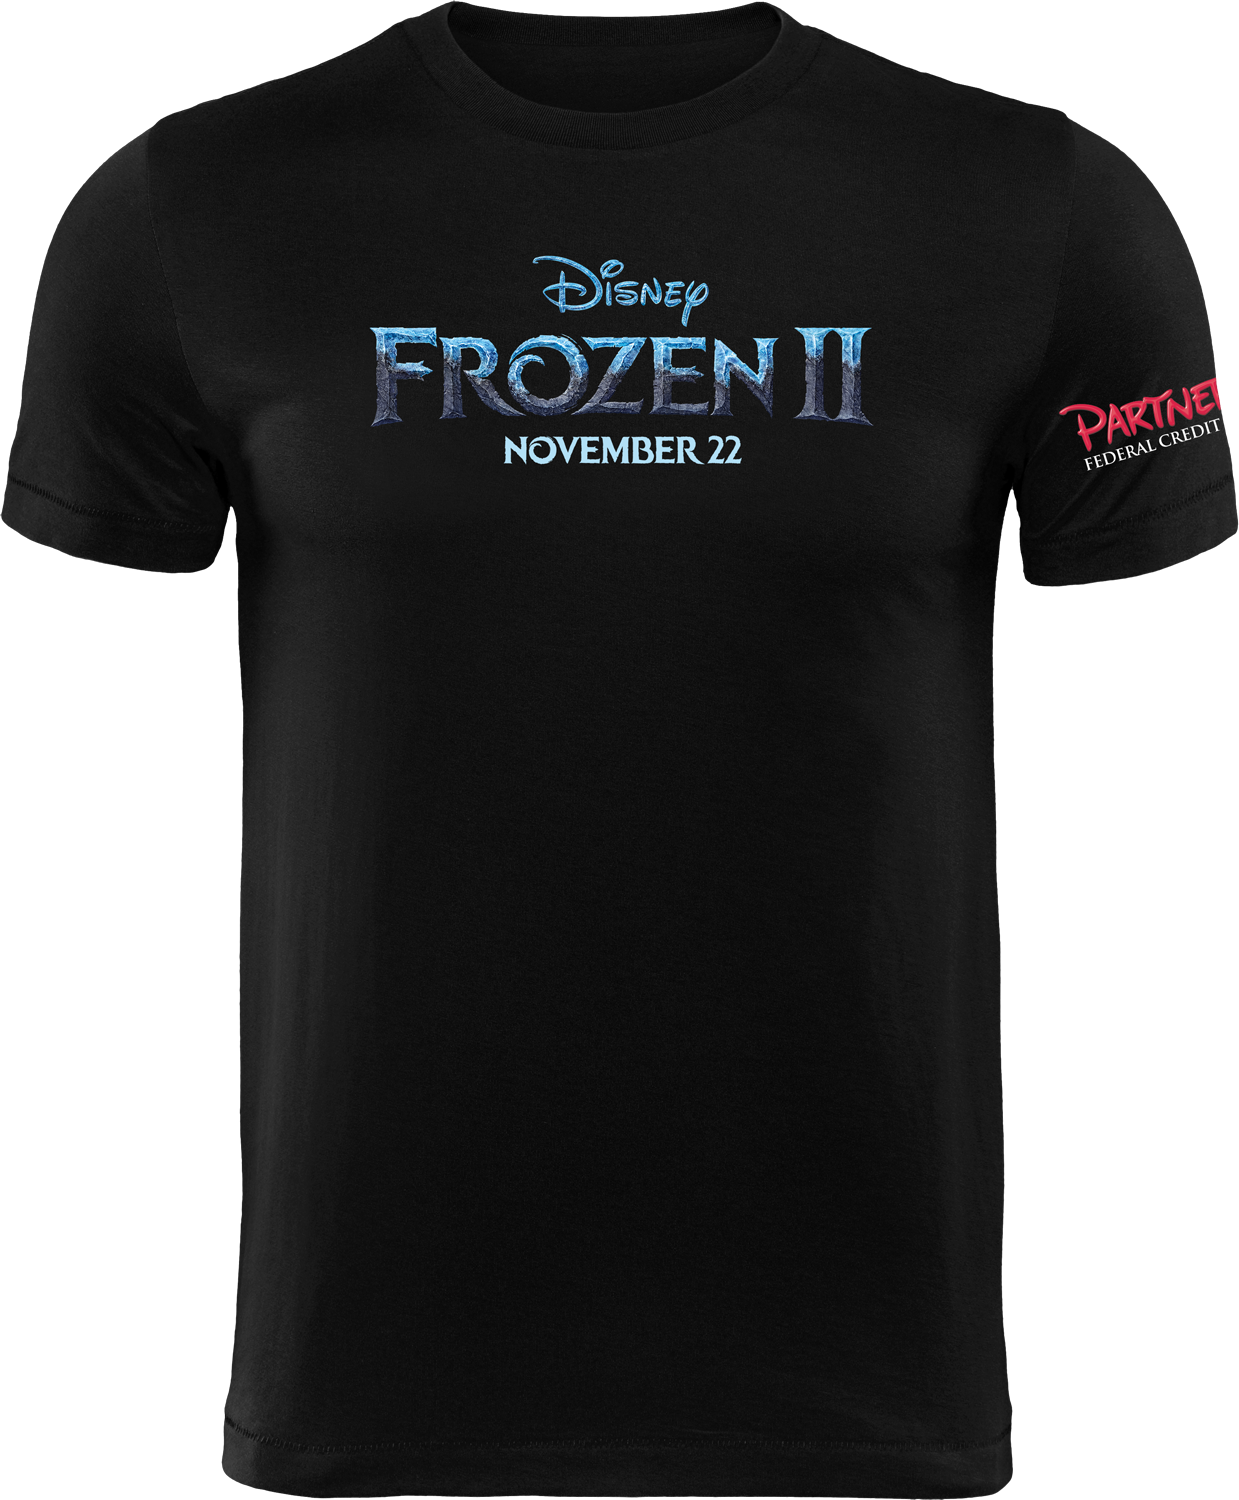 Frozen 2 Synergy Campaign t-shirt